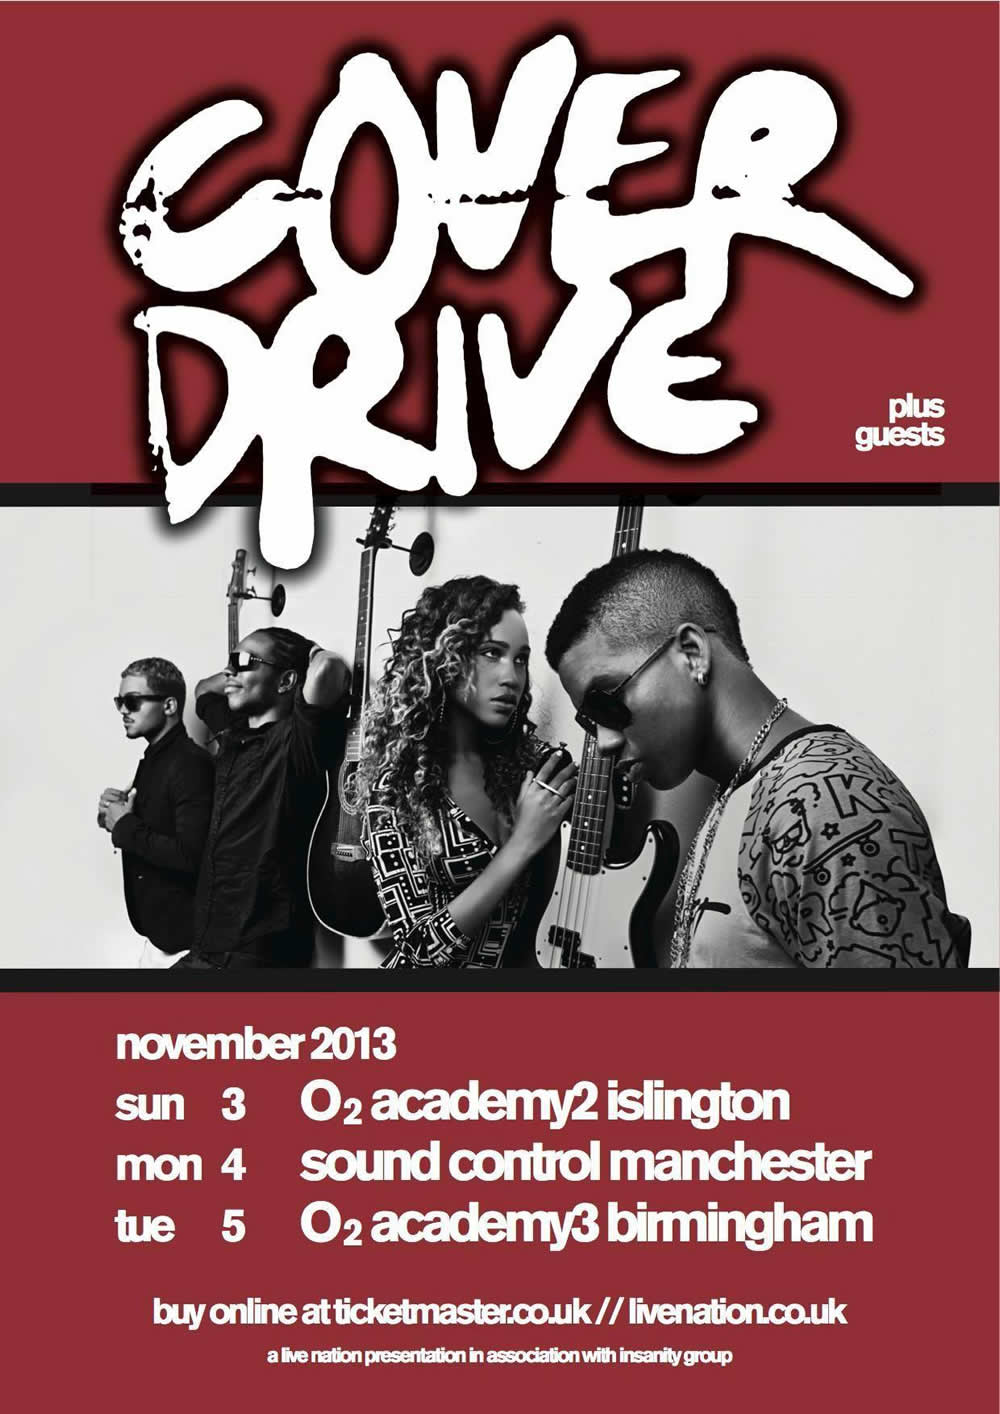 COVERDRIVE TOUR POSTER